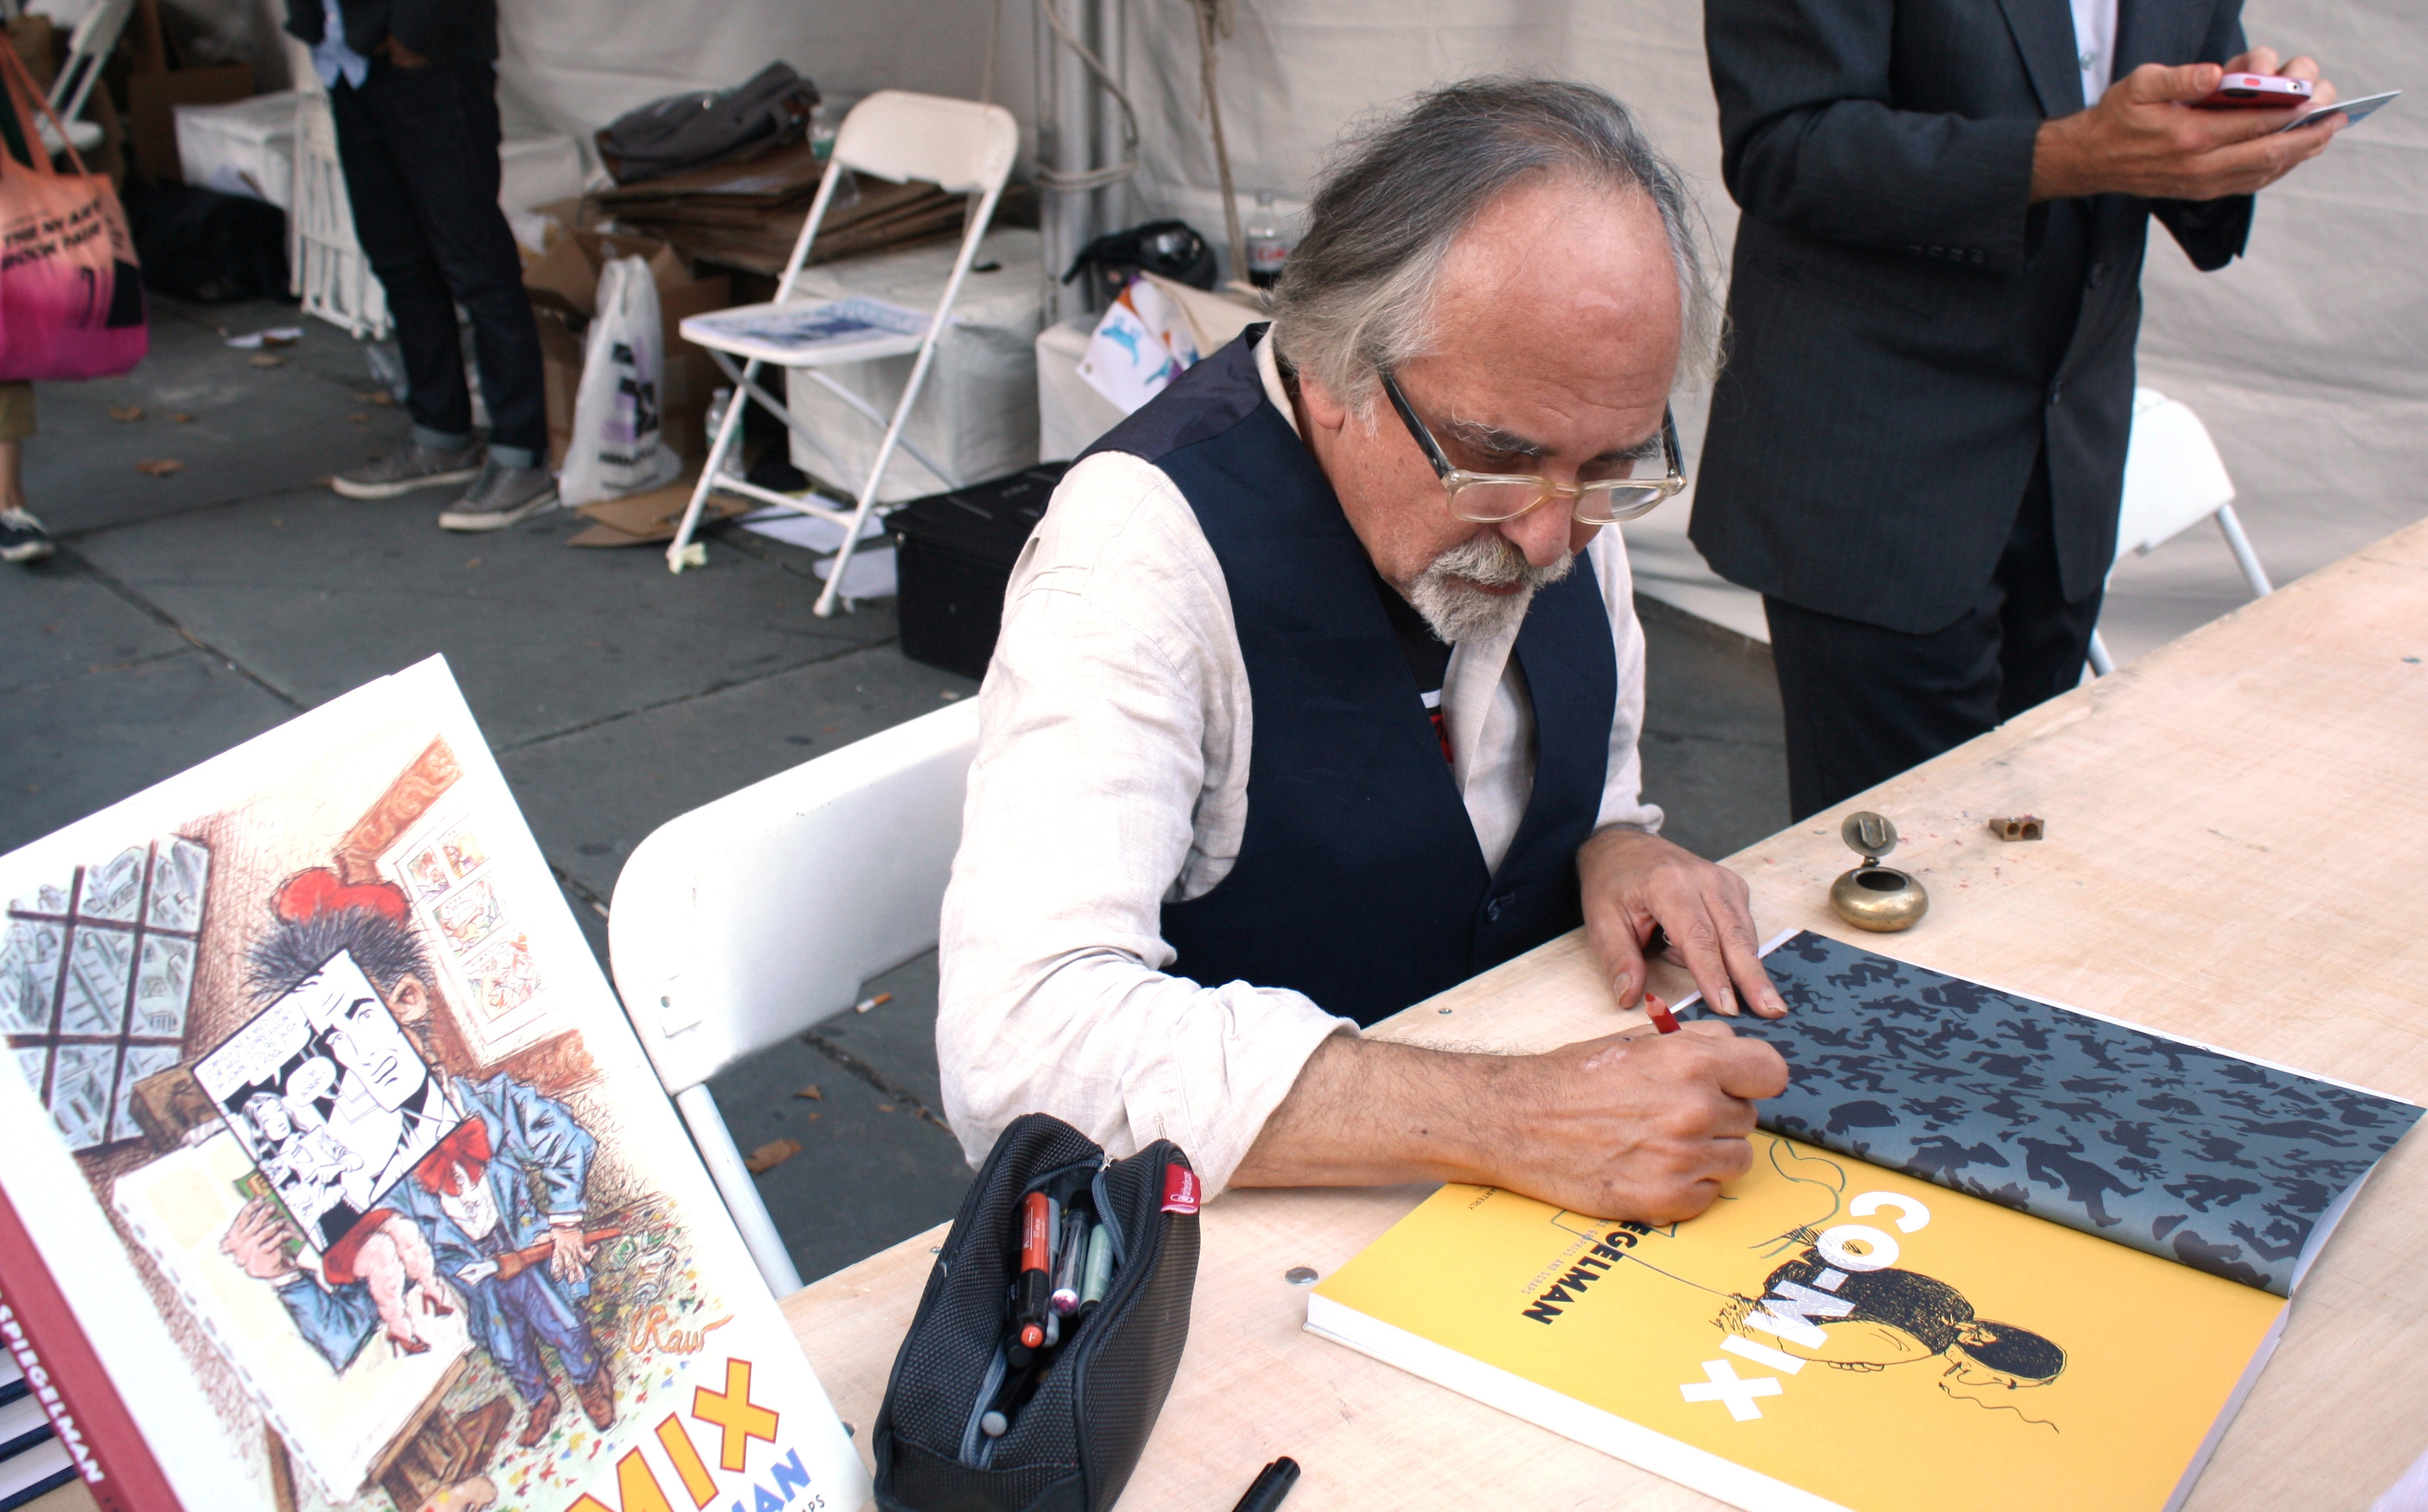 Art Spiegelman signs books. (Photos: Saranya Kapur)